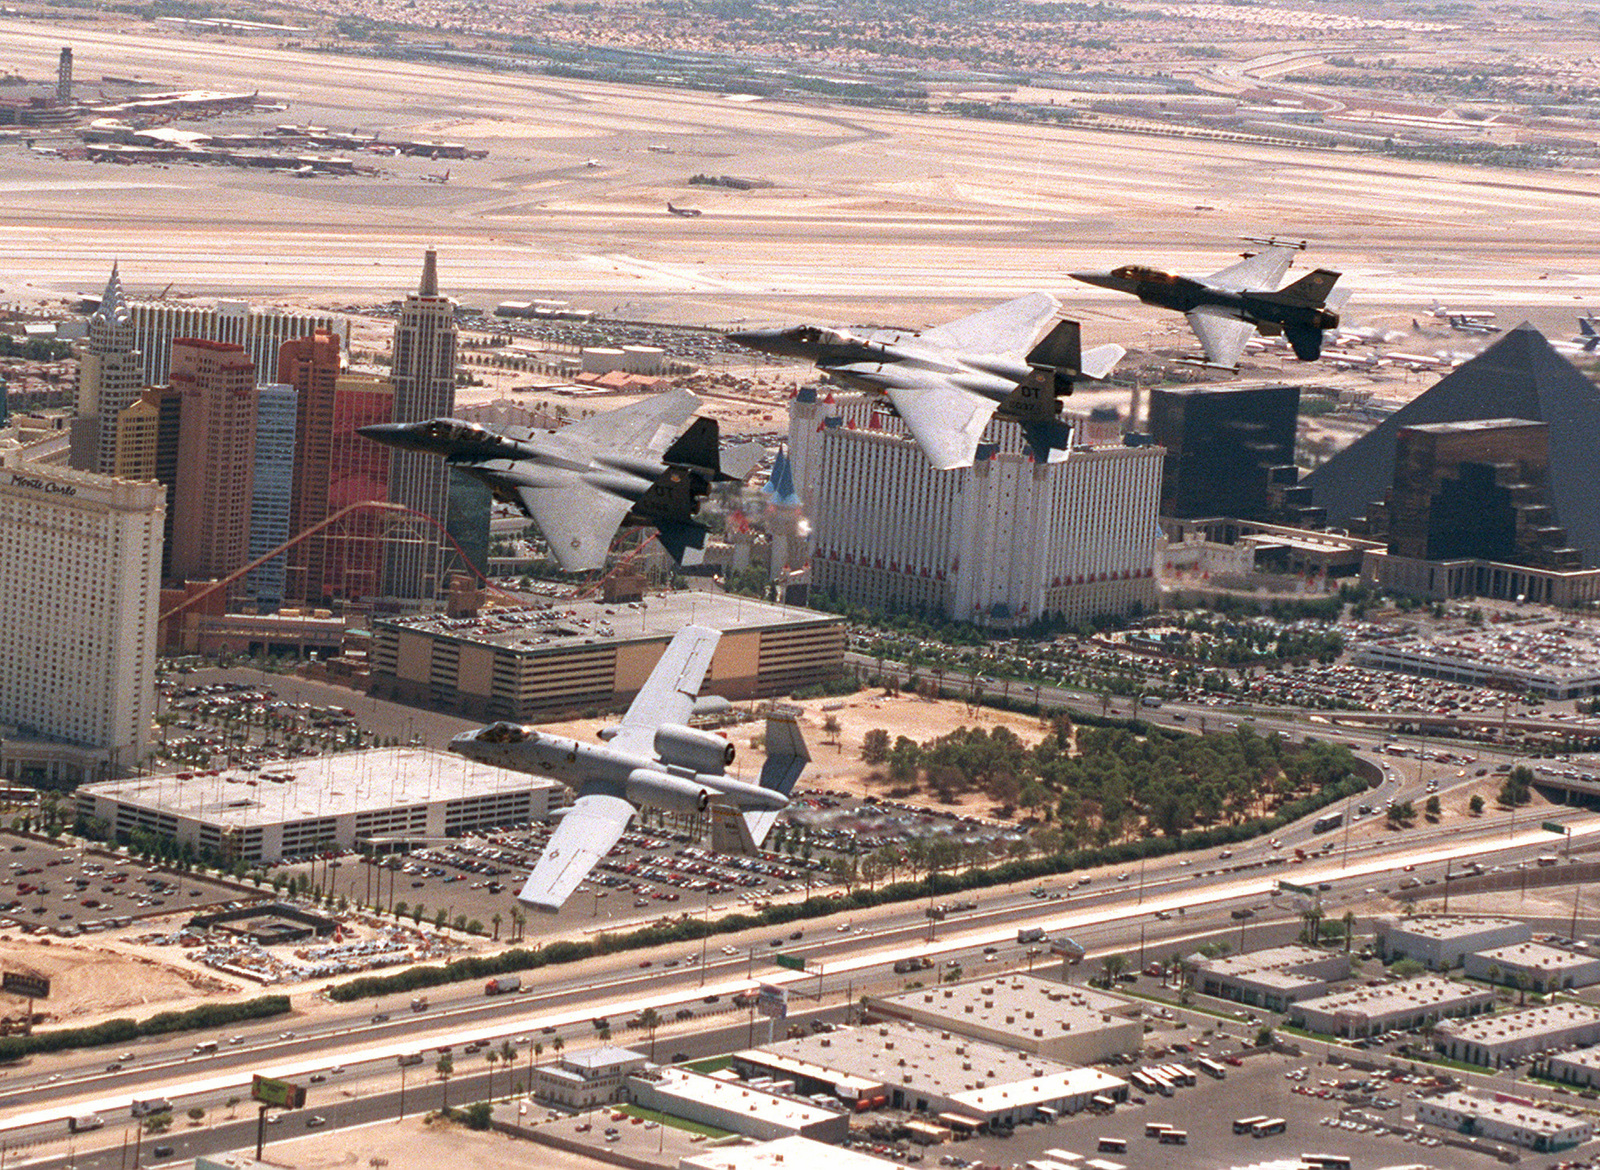 """An A-10, F-15E, F-15C and a F-16D from Nellis AFB, fly a finger tip formation over the Las Vegas """"Strip"""" with the (Left to Right) Monte Carlo, New York - New York, Excalibur and the Luxor hotels in the background"""